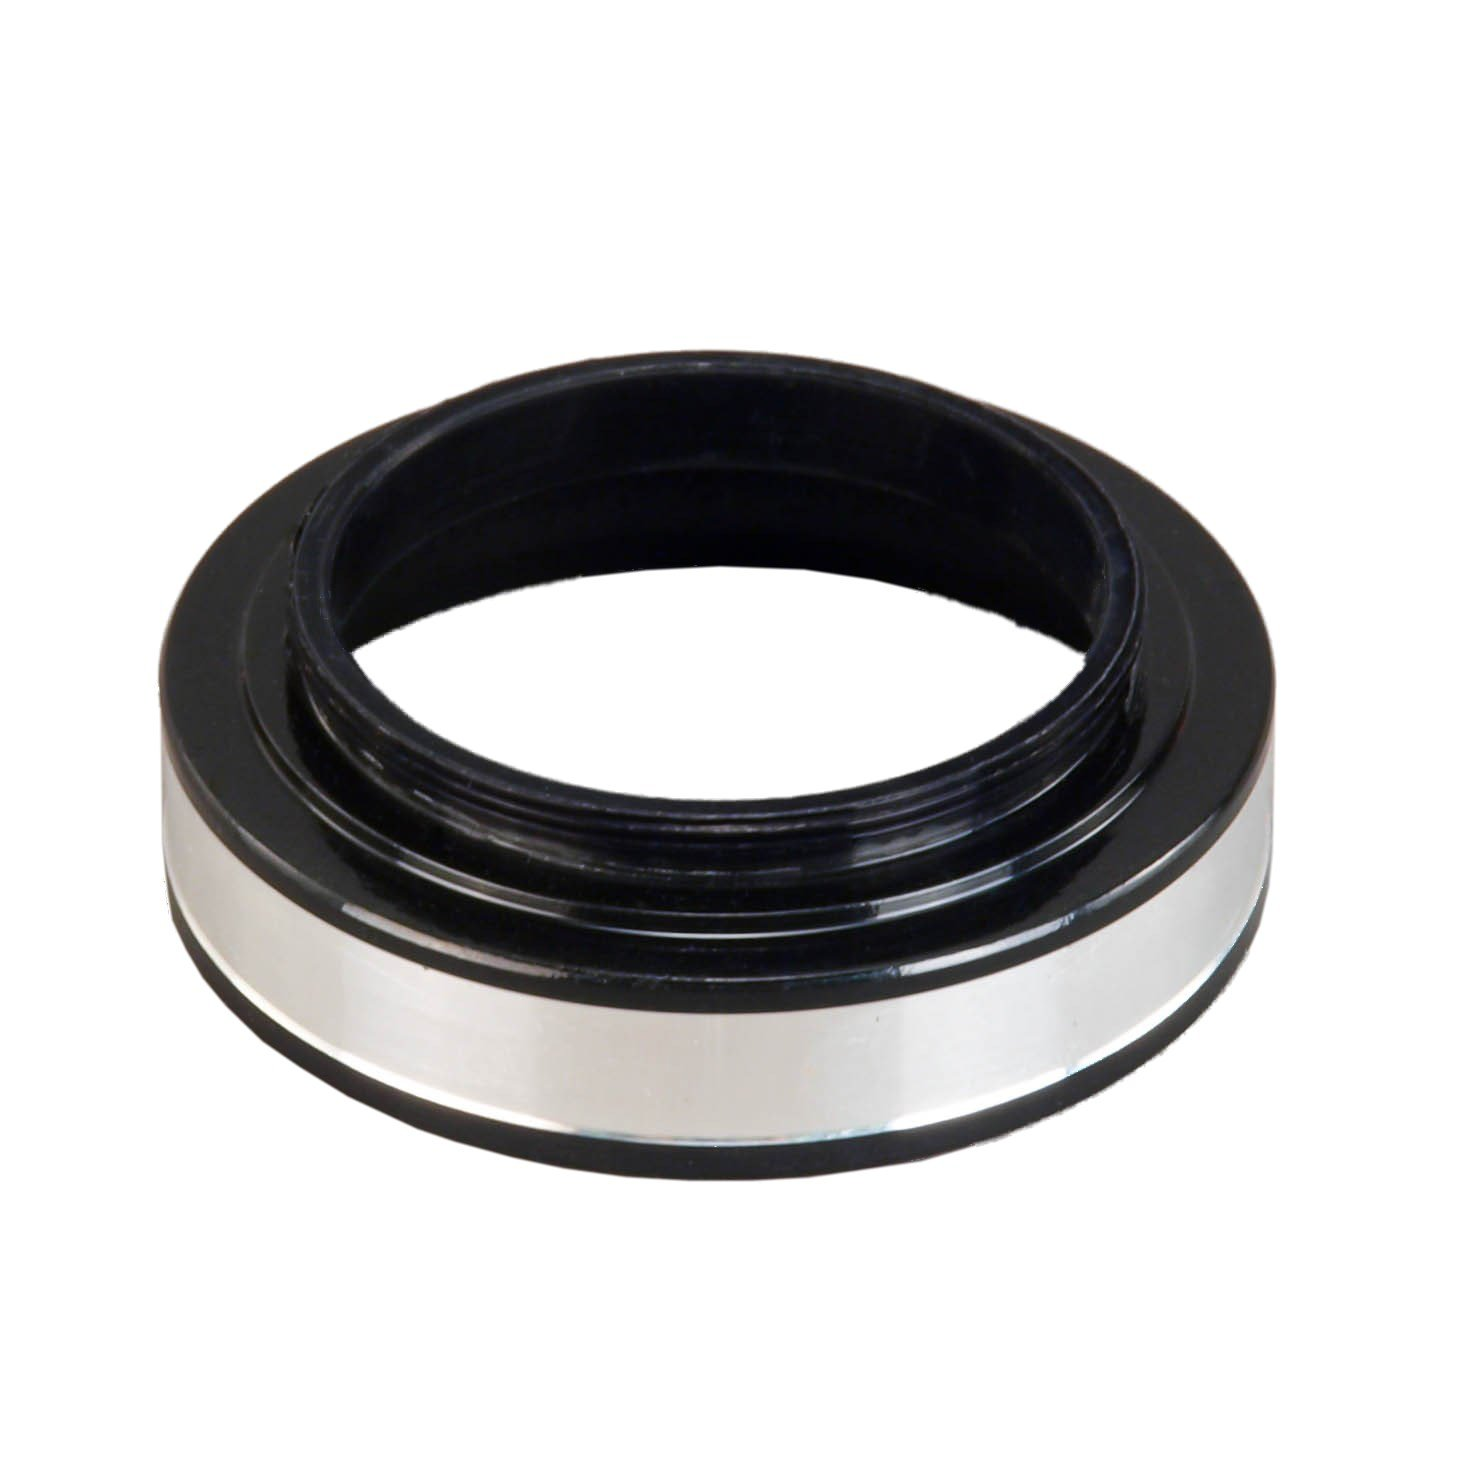 OMAX 38mm Thread Ring Light Adapter for Bausch & Lomb Microscopes No Glass by OMAX